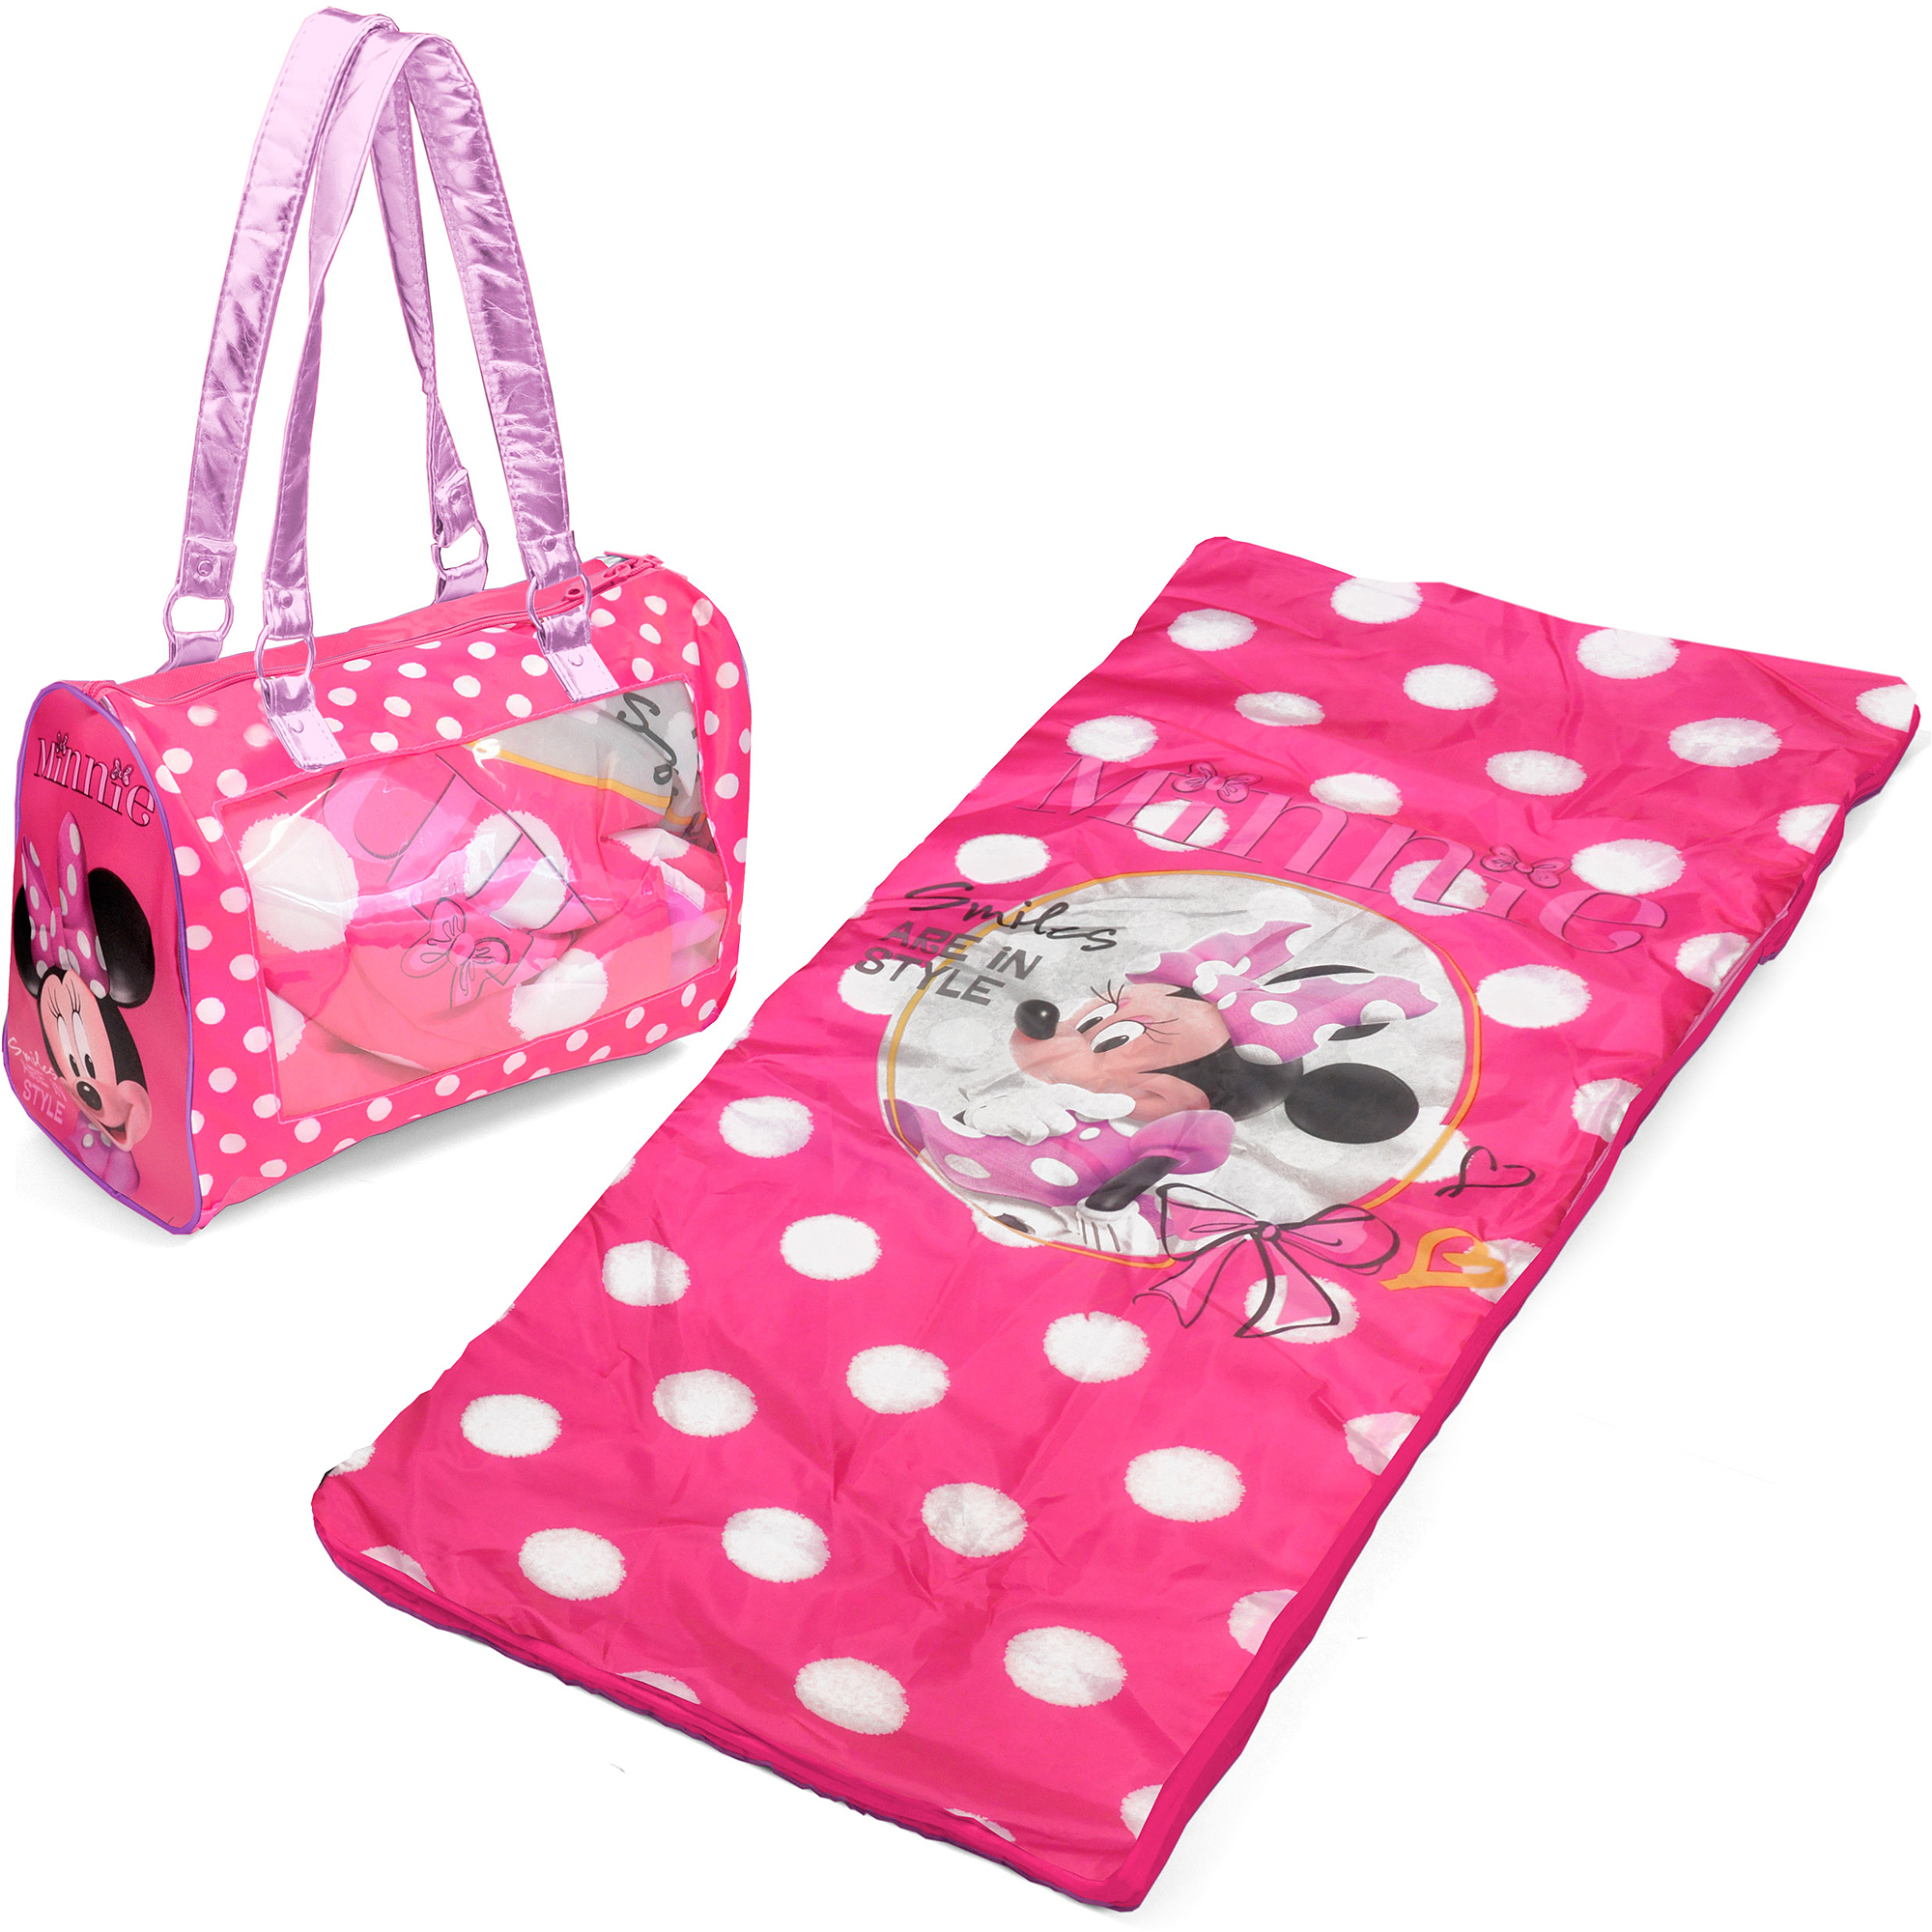 Disney Minnie Mouse Toddler Sleepover Set/Nap Mat with Duffle